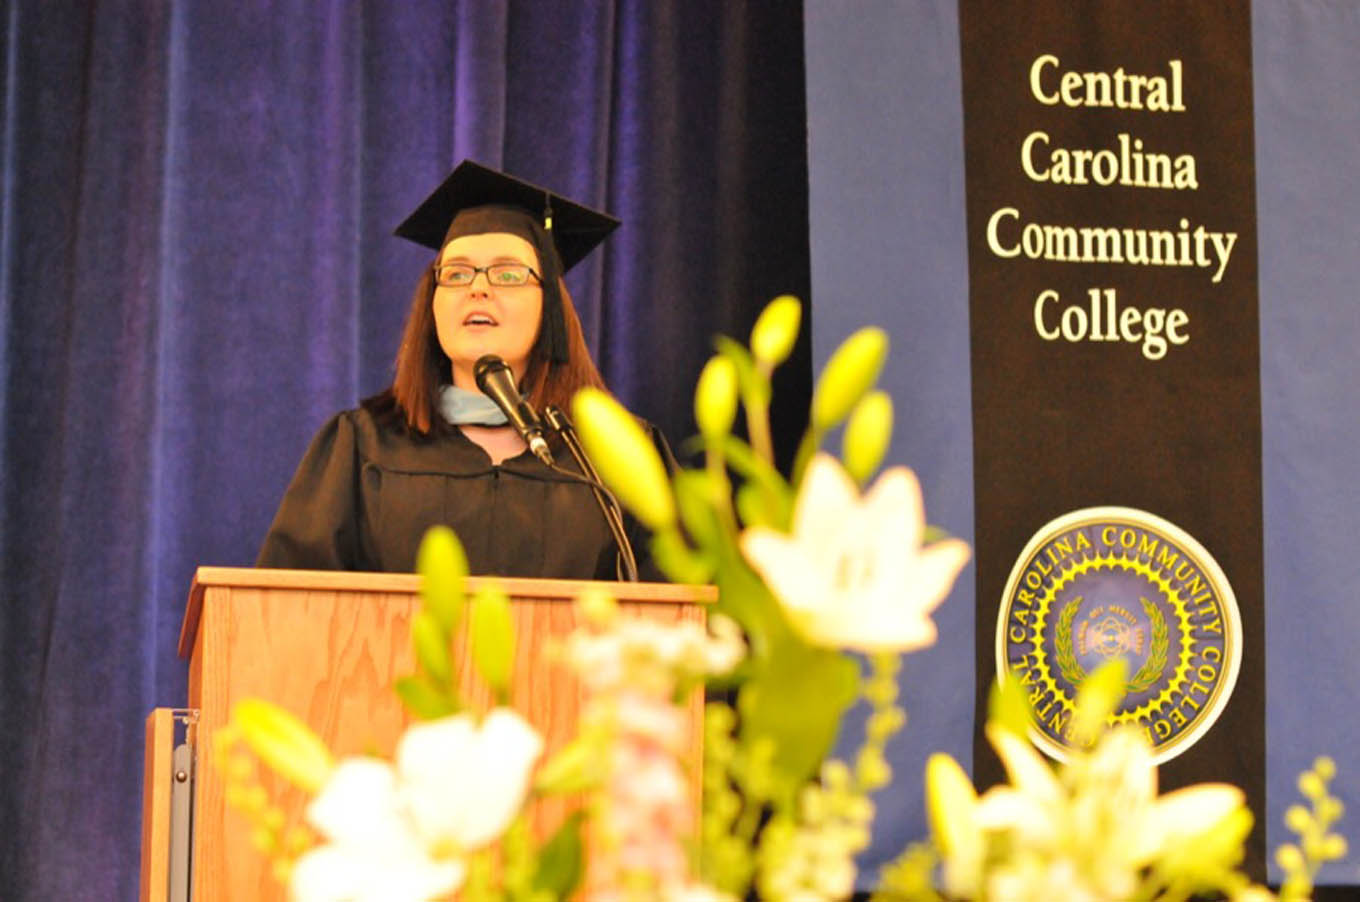 Click to enlarge,  Bianka Rhodes Stumpf, Central Carolina Community College Faculty Member of the Year, gave the commencement address.